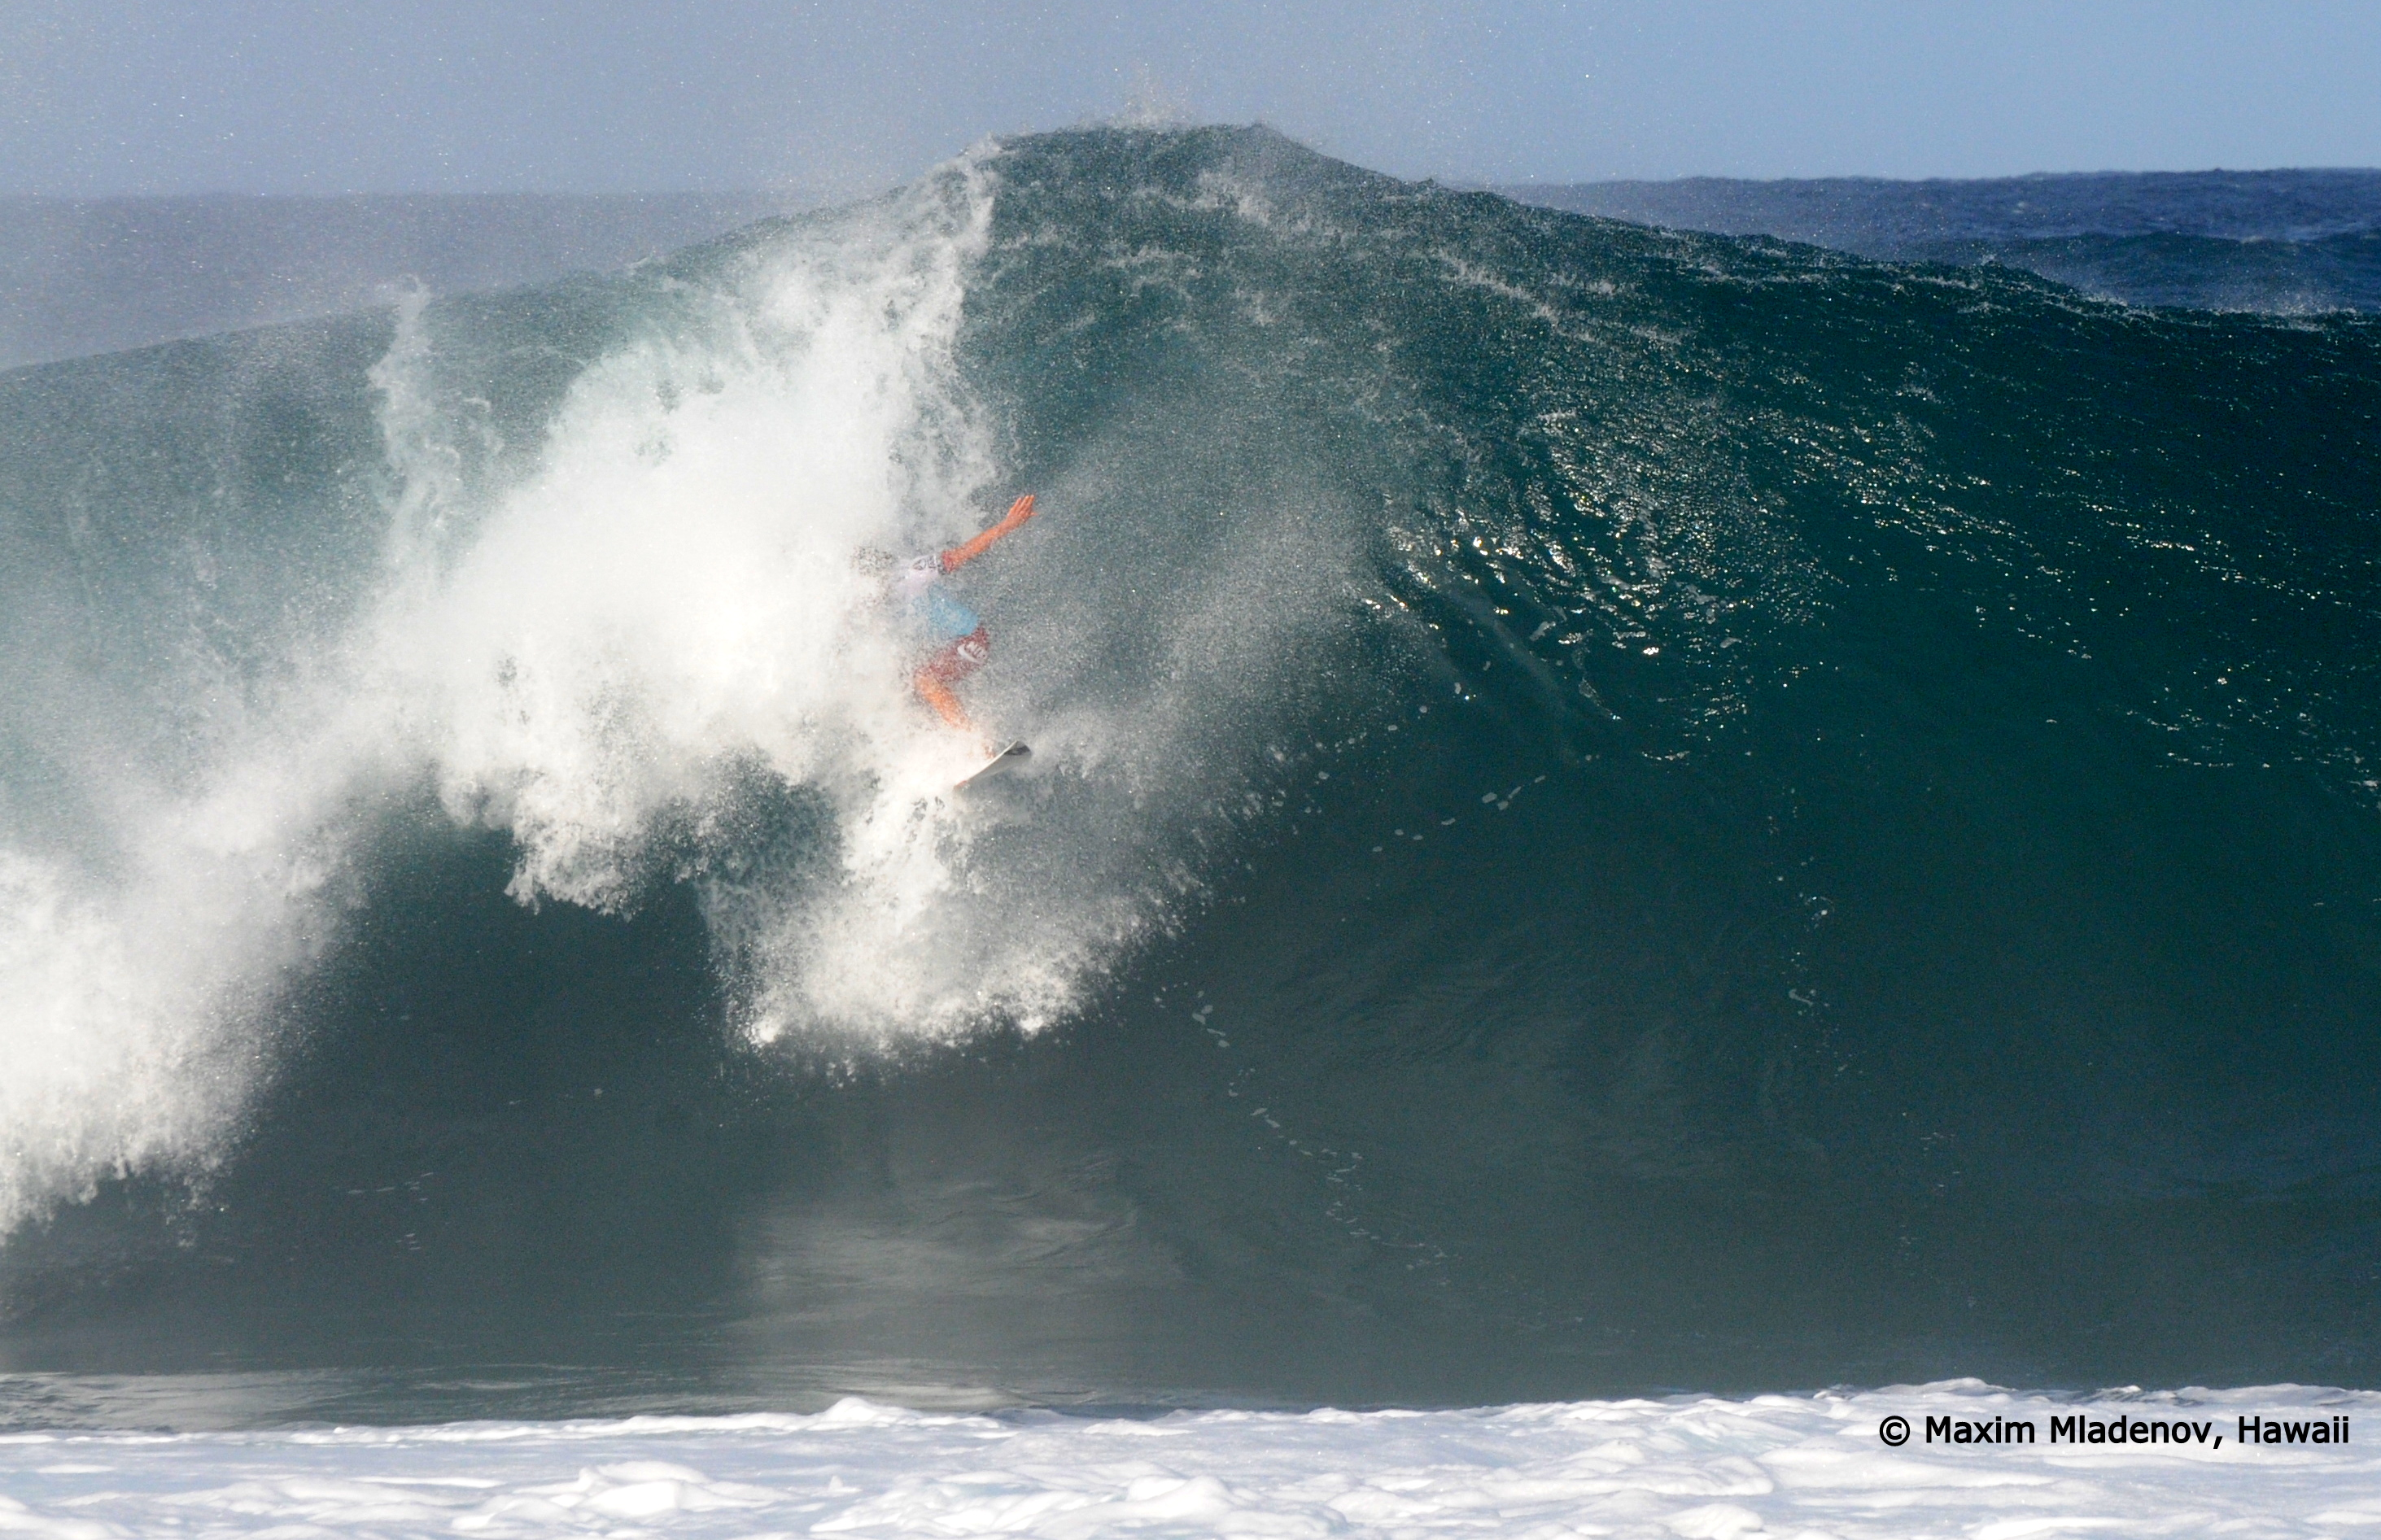 Another wipe-out, 09-12-2011 © Maxim Mladenov, Hawaii